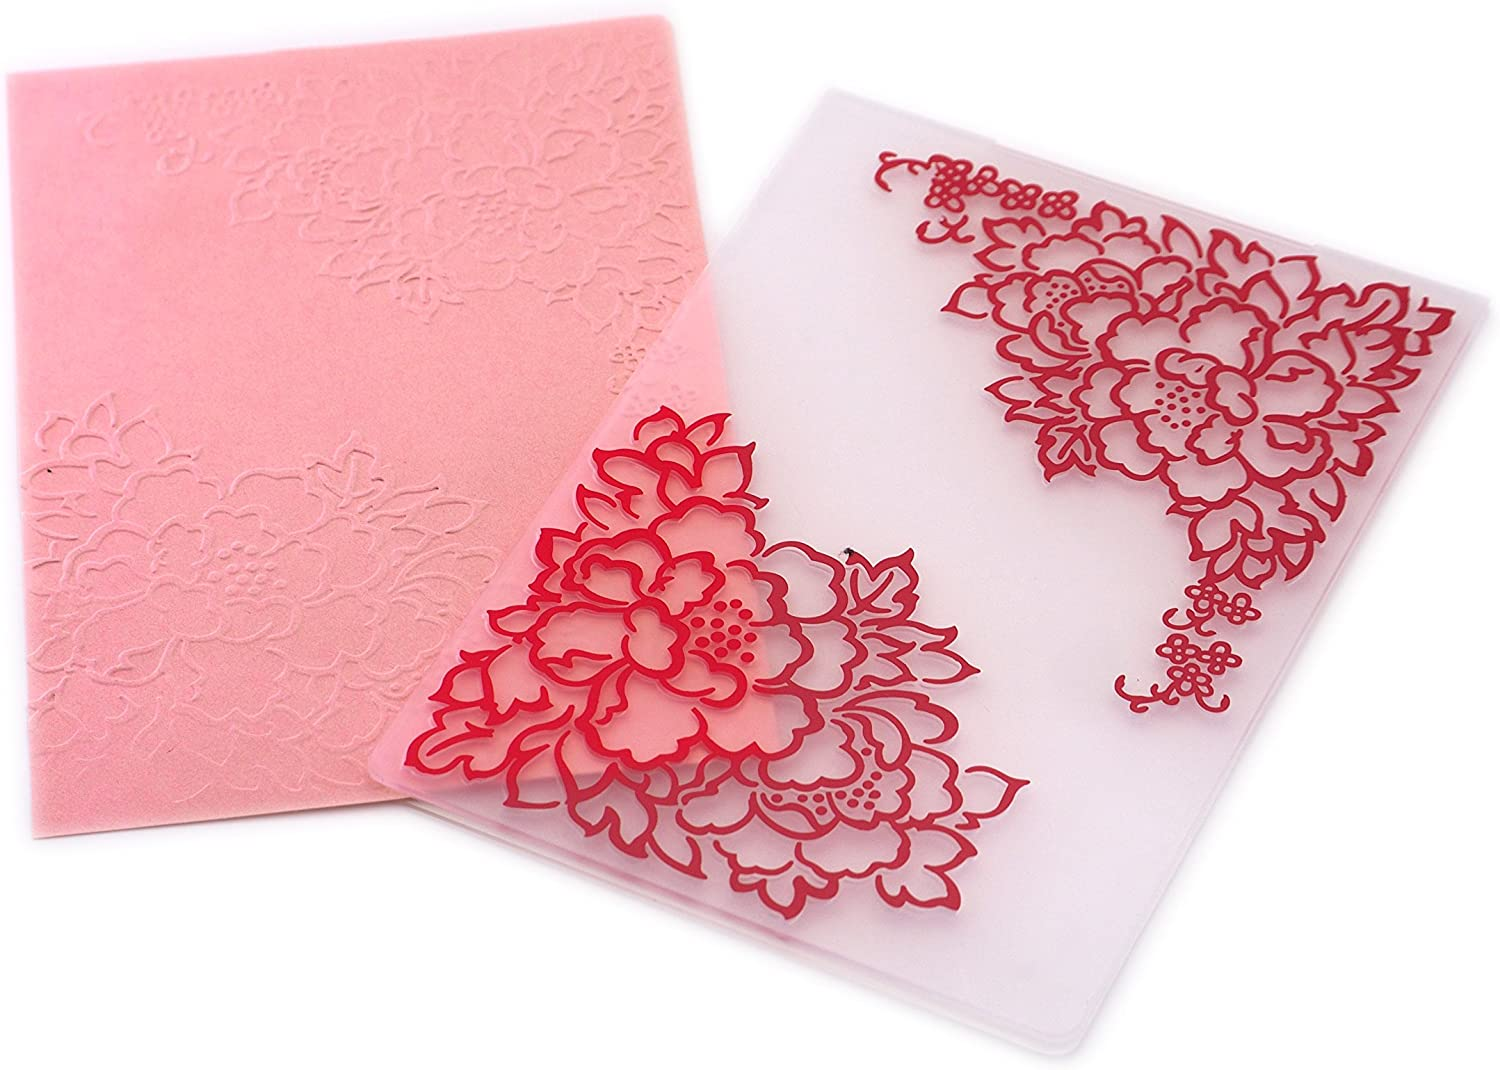 Red Hearts Creationtop Lines Plastic Embossing Folder for DIY Scrapbooking Card Making Supplies Embossing